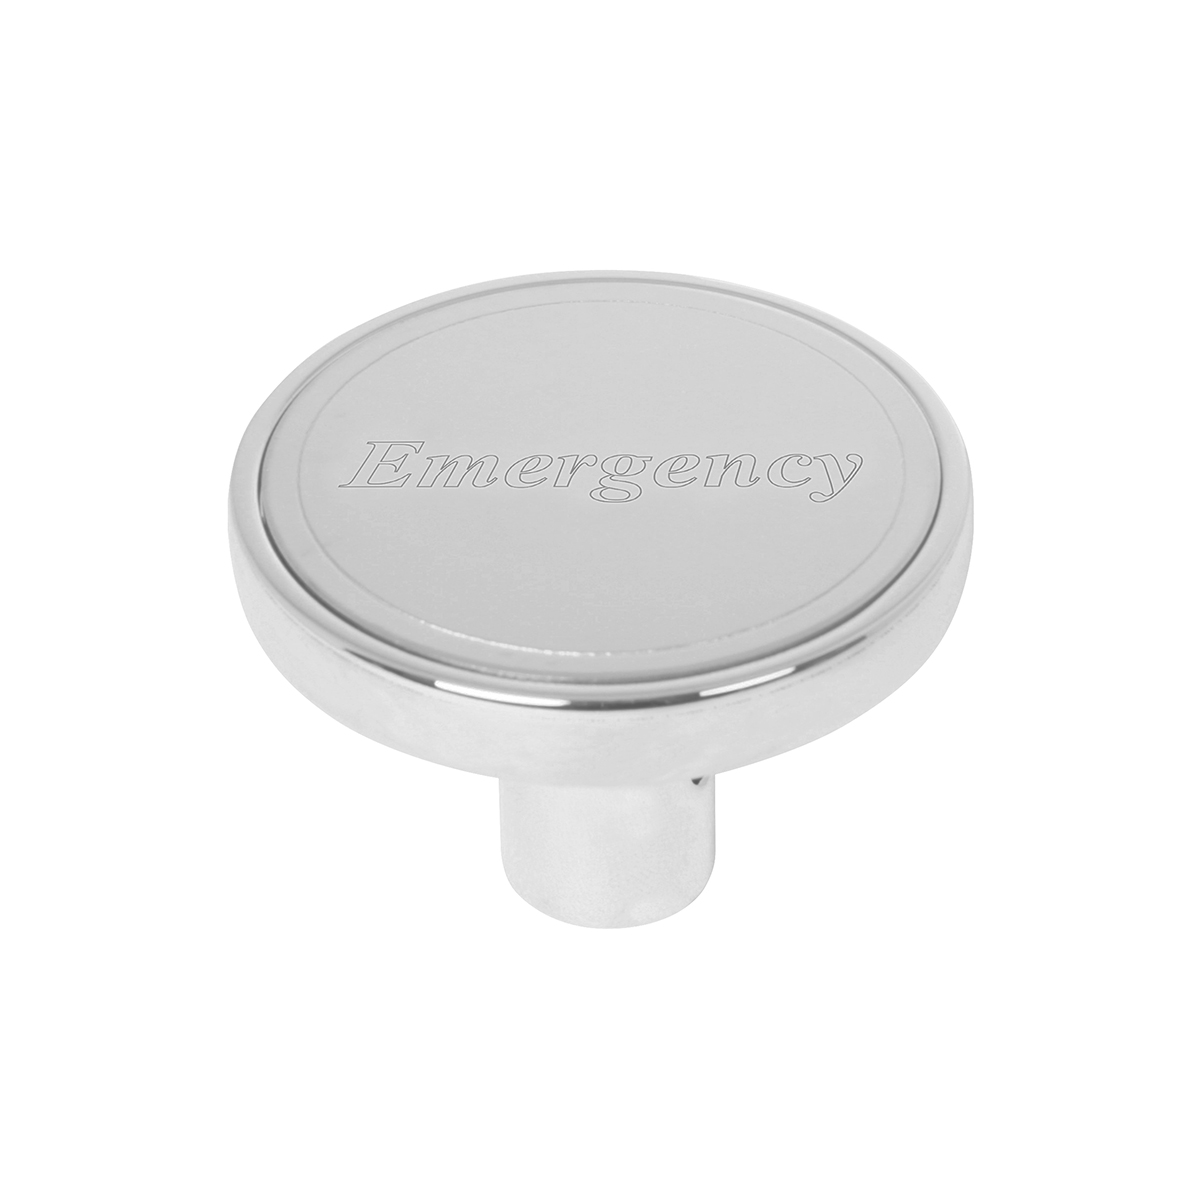 "#96247 Air Valve Control Knob w/Stainless Steel Plate (1 ¹⁵∕₁₆"" dia. x 1 ⁵∕₁₆"" (H) x ⅜"" I.D. ) - Emergency"